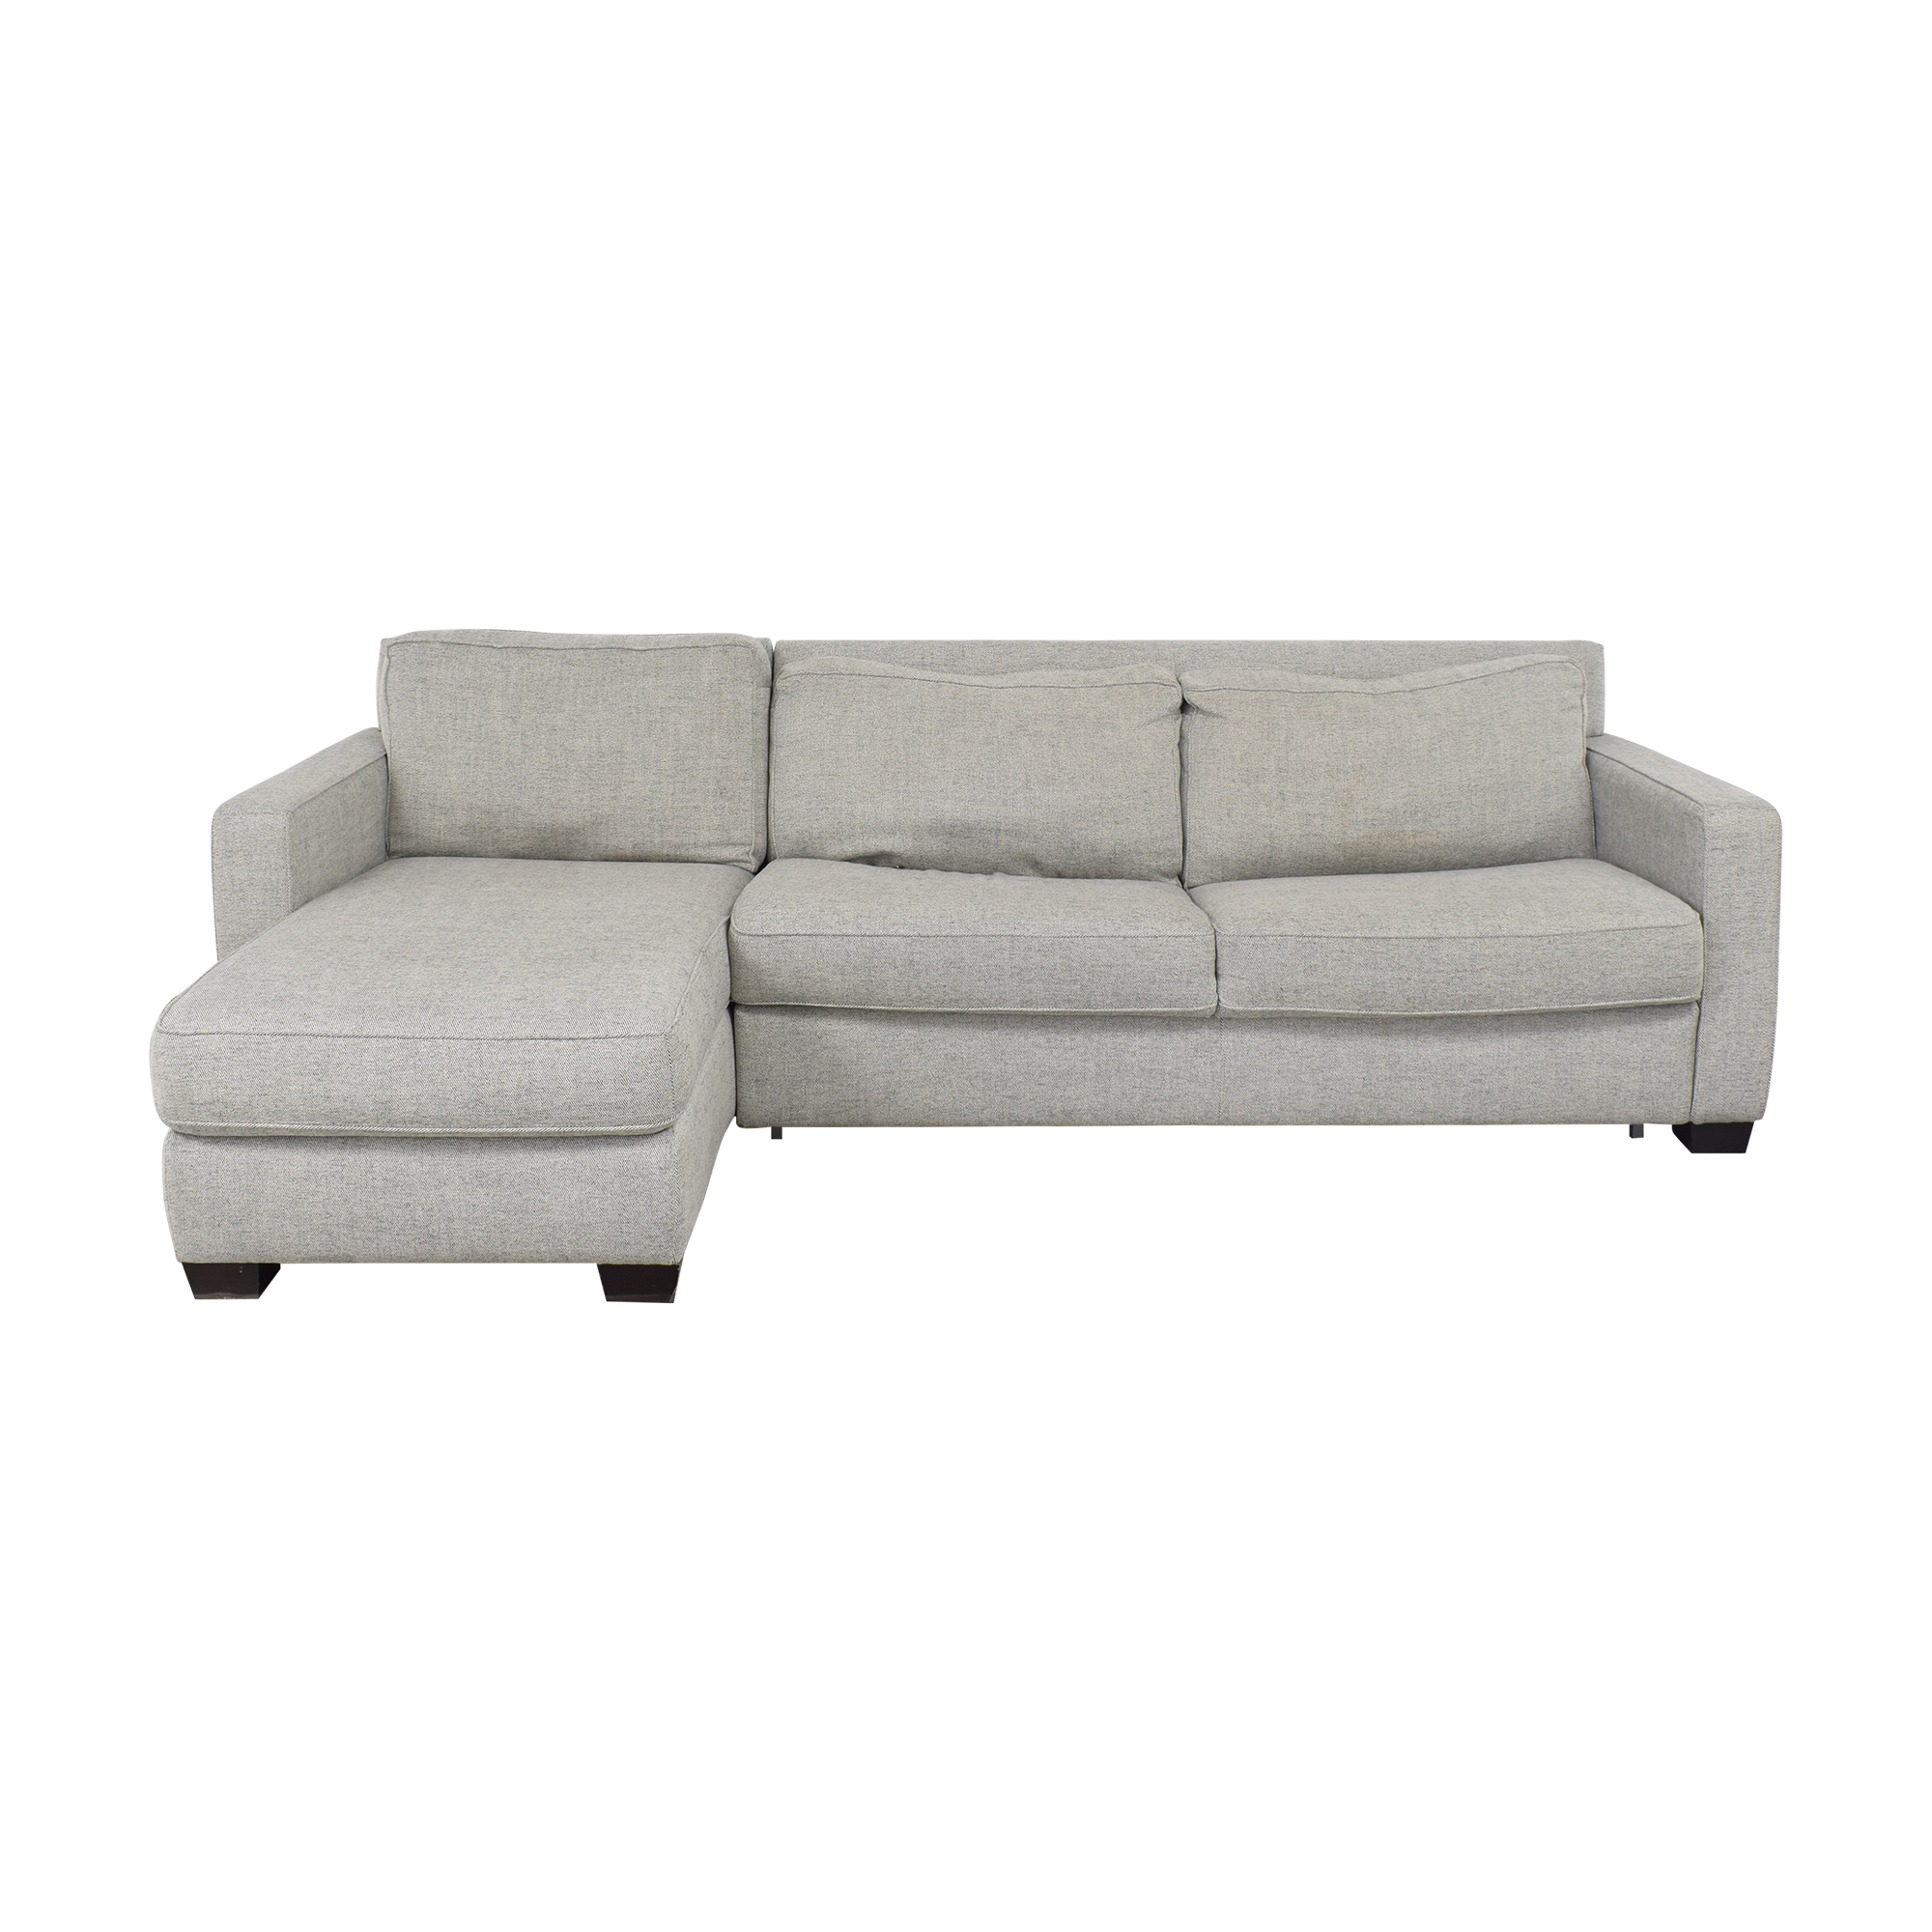 West Elm West Elm Henry Two Piece Full Sleeper Sectional with Storage nj